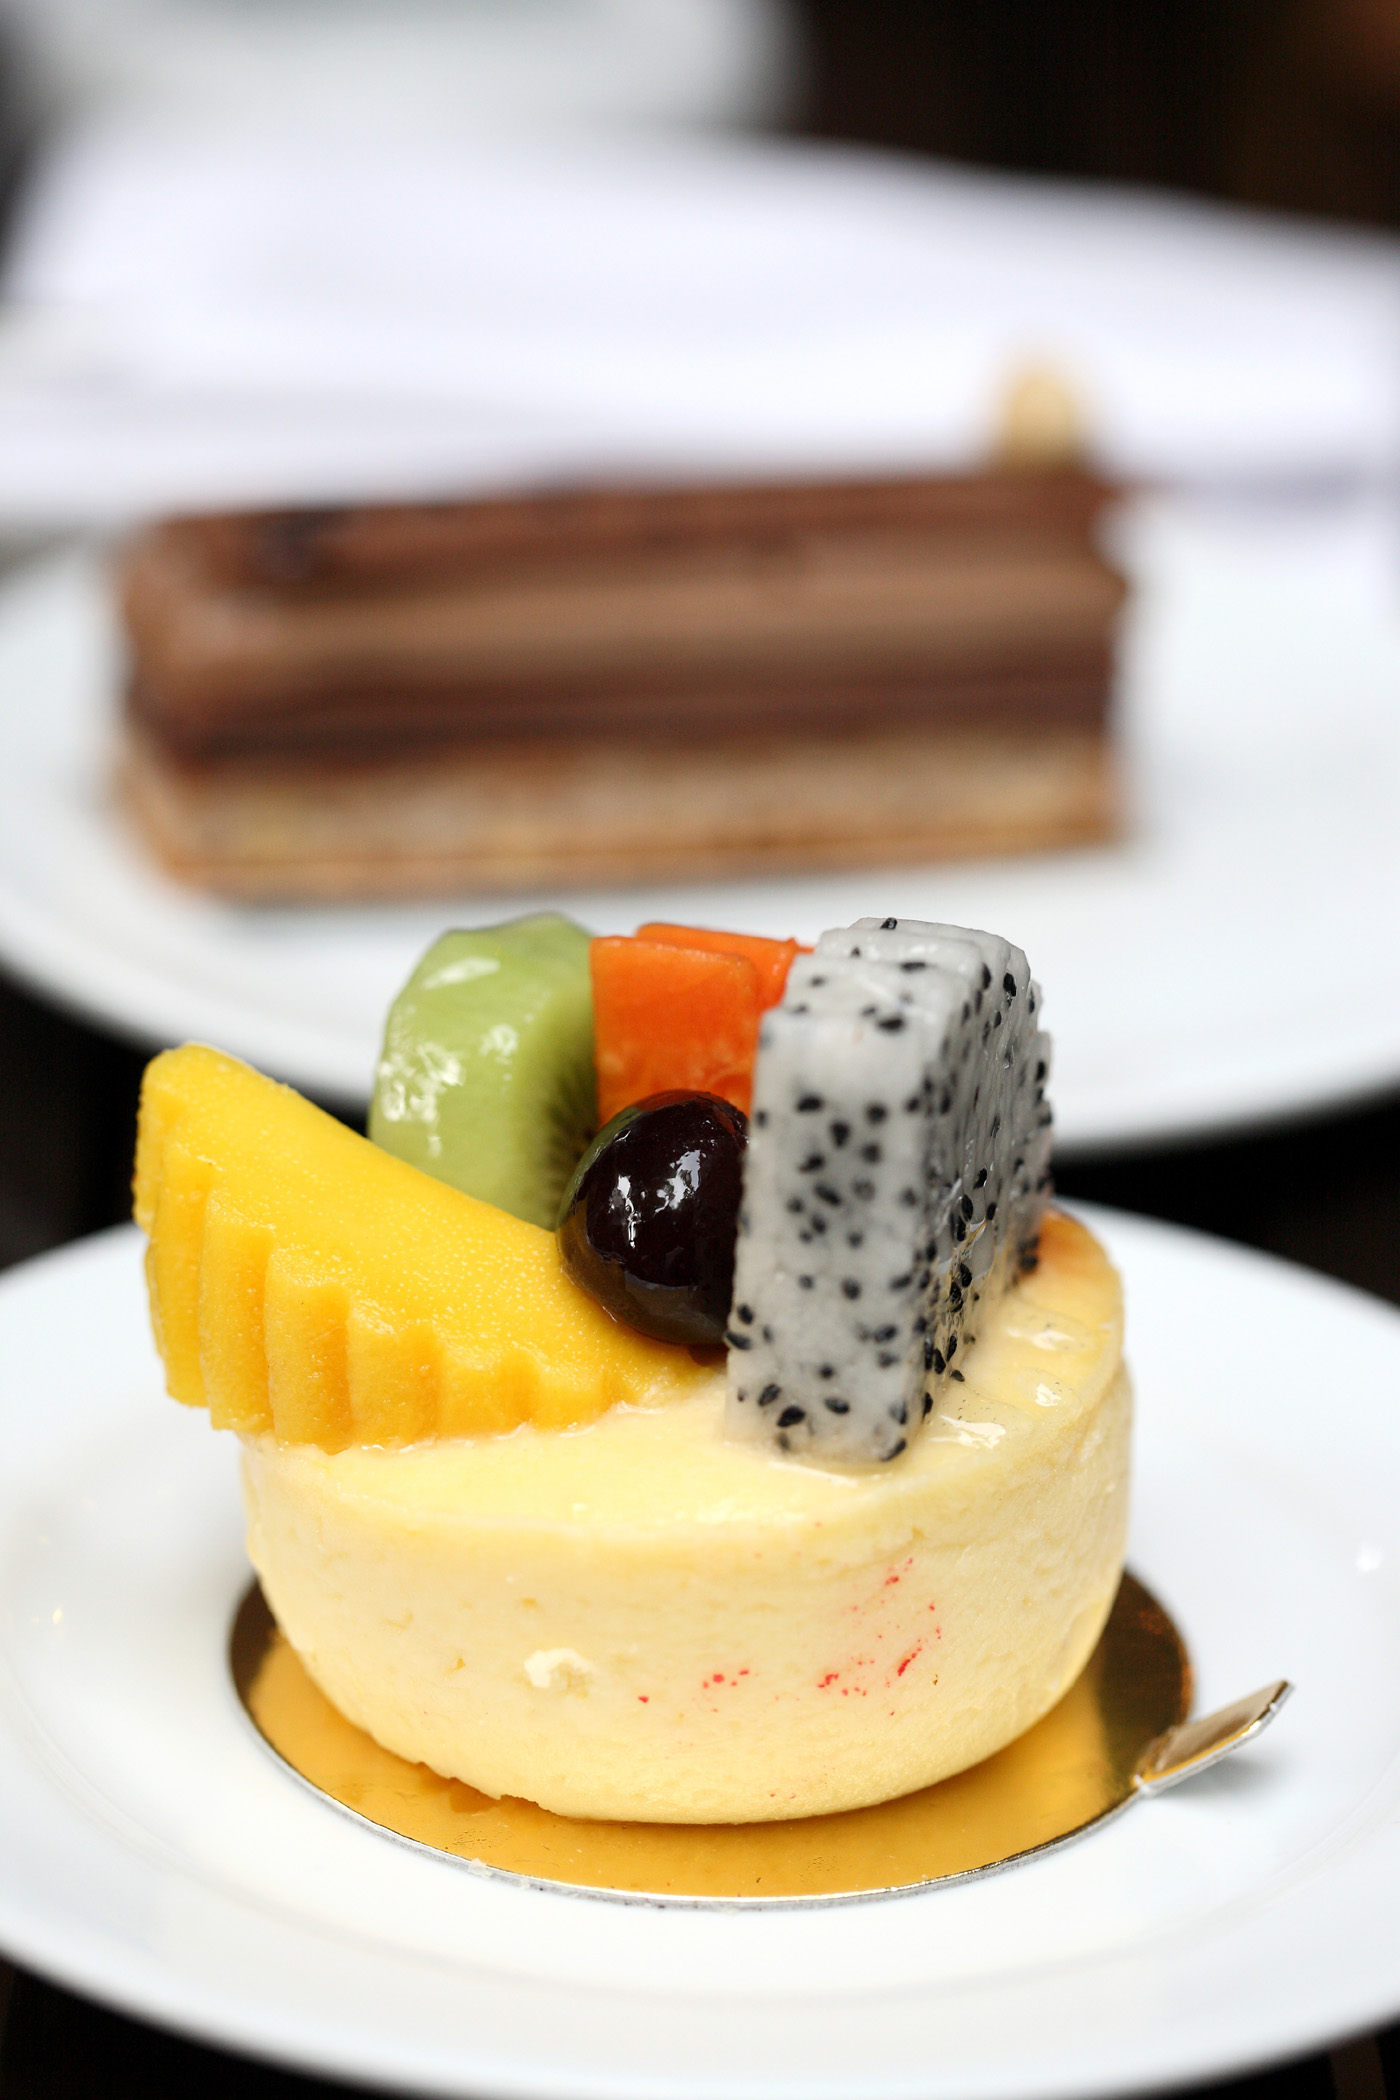 Fruit cake on a plate 51074